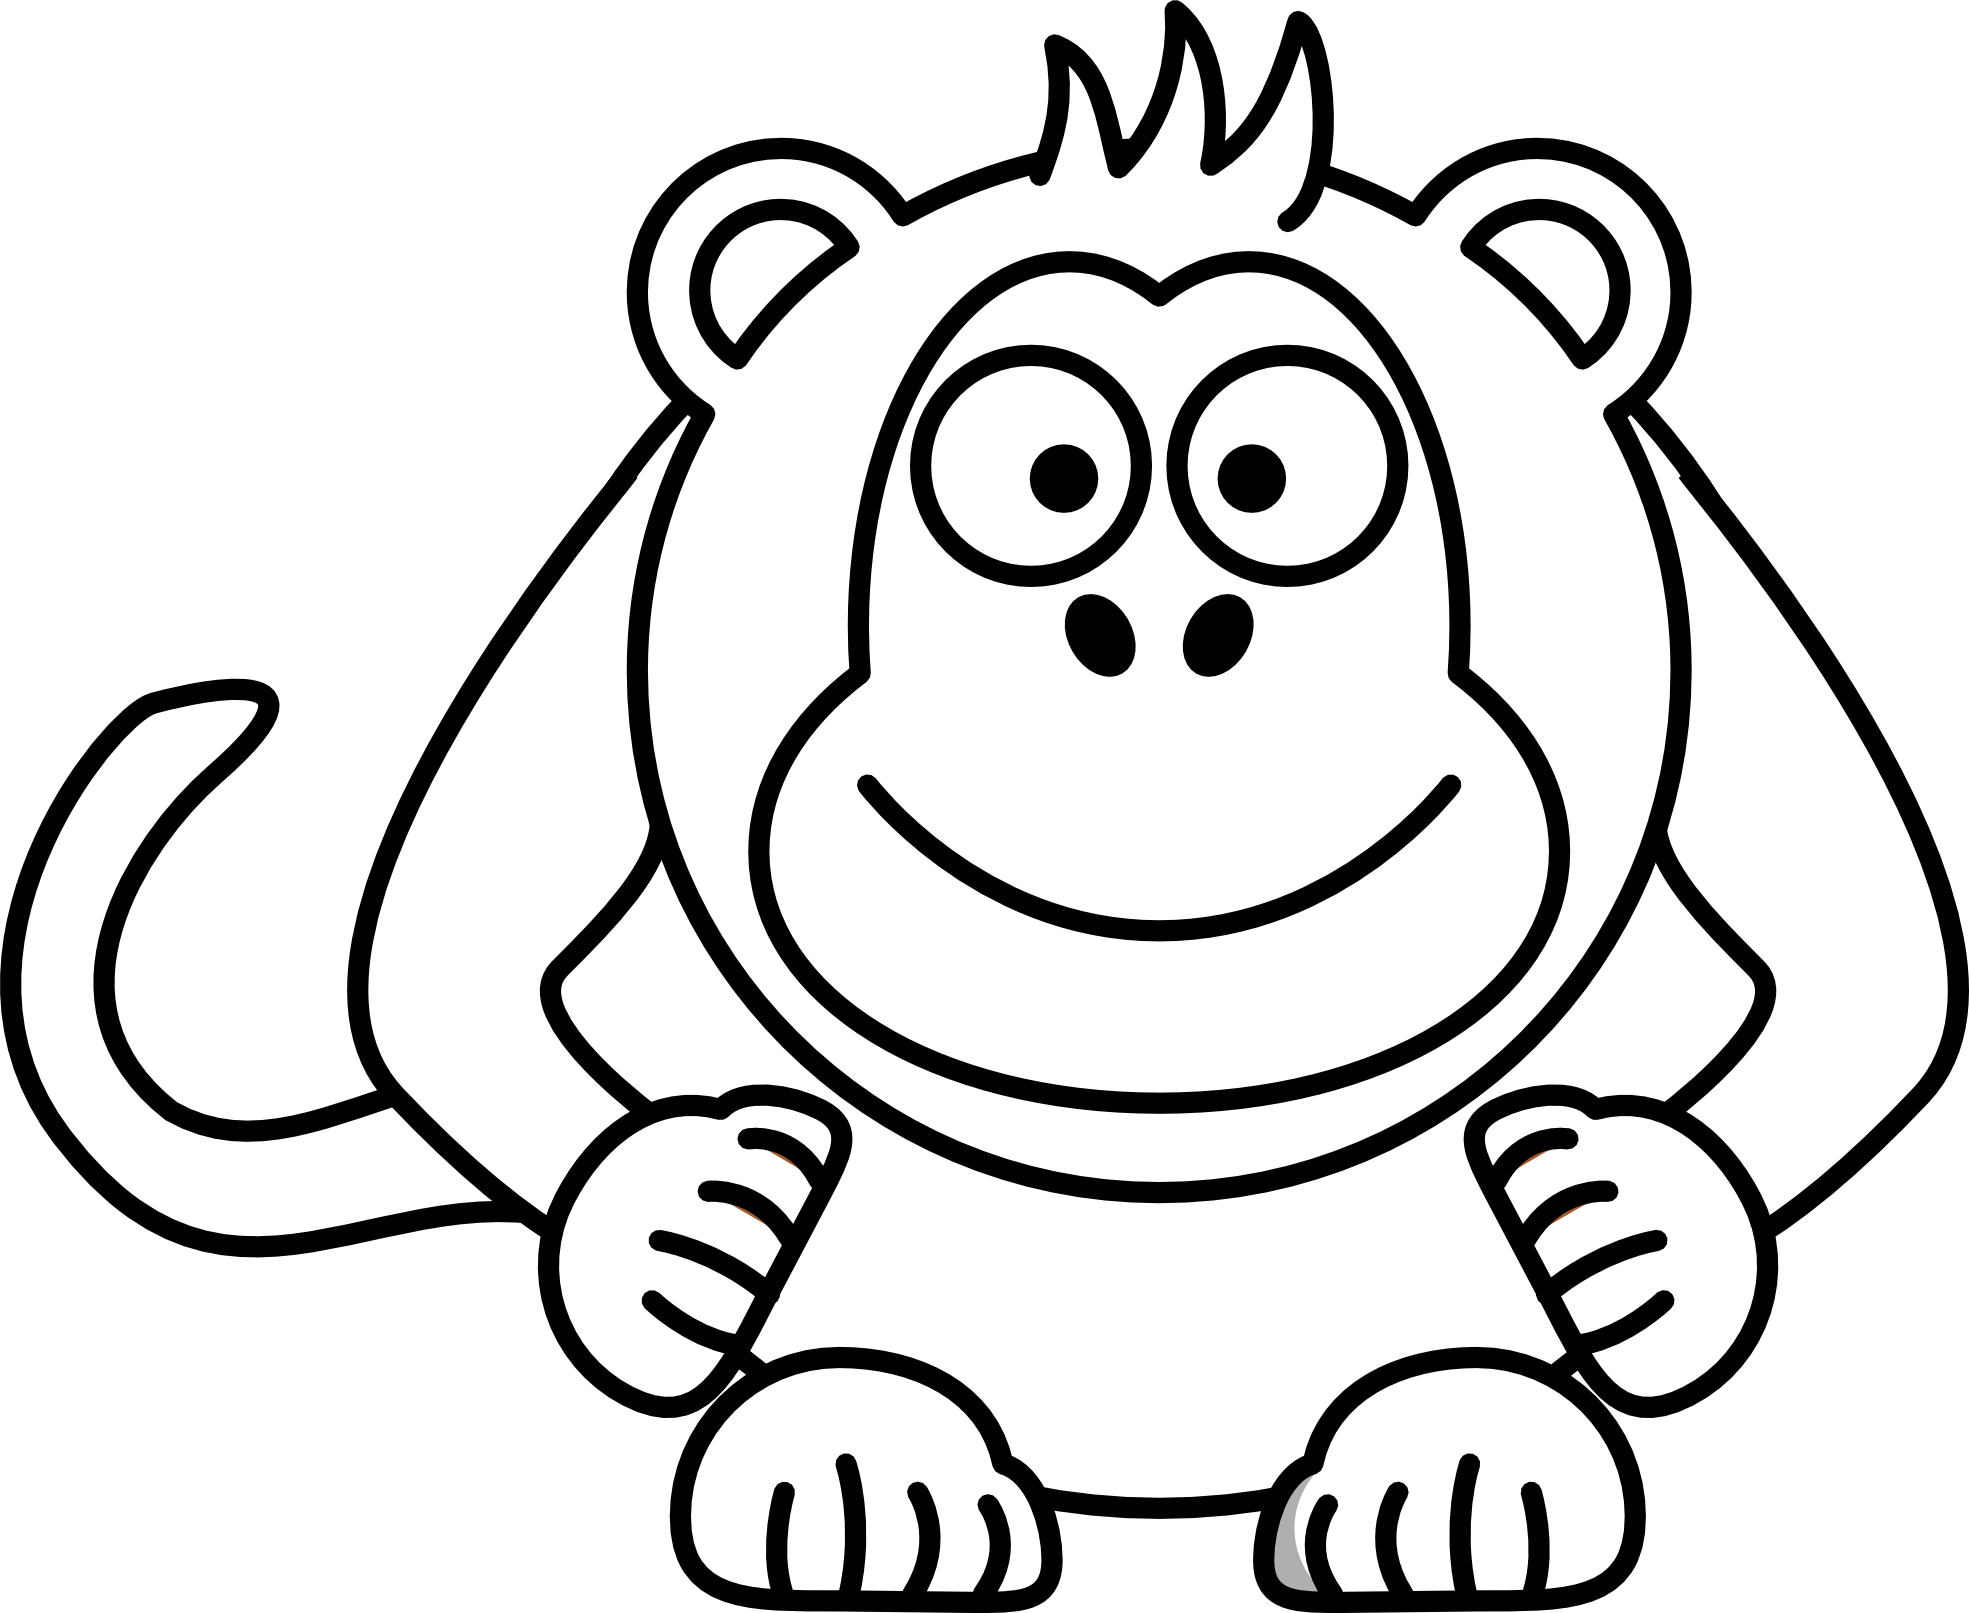 1969x1613 Monkey Drawings Free Download Clip Art Free Clip Art on